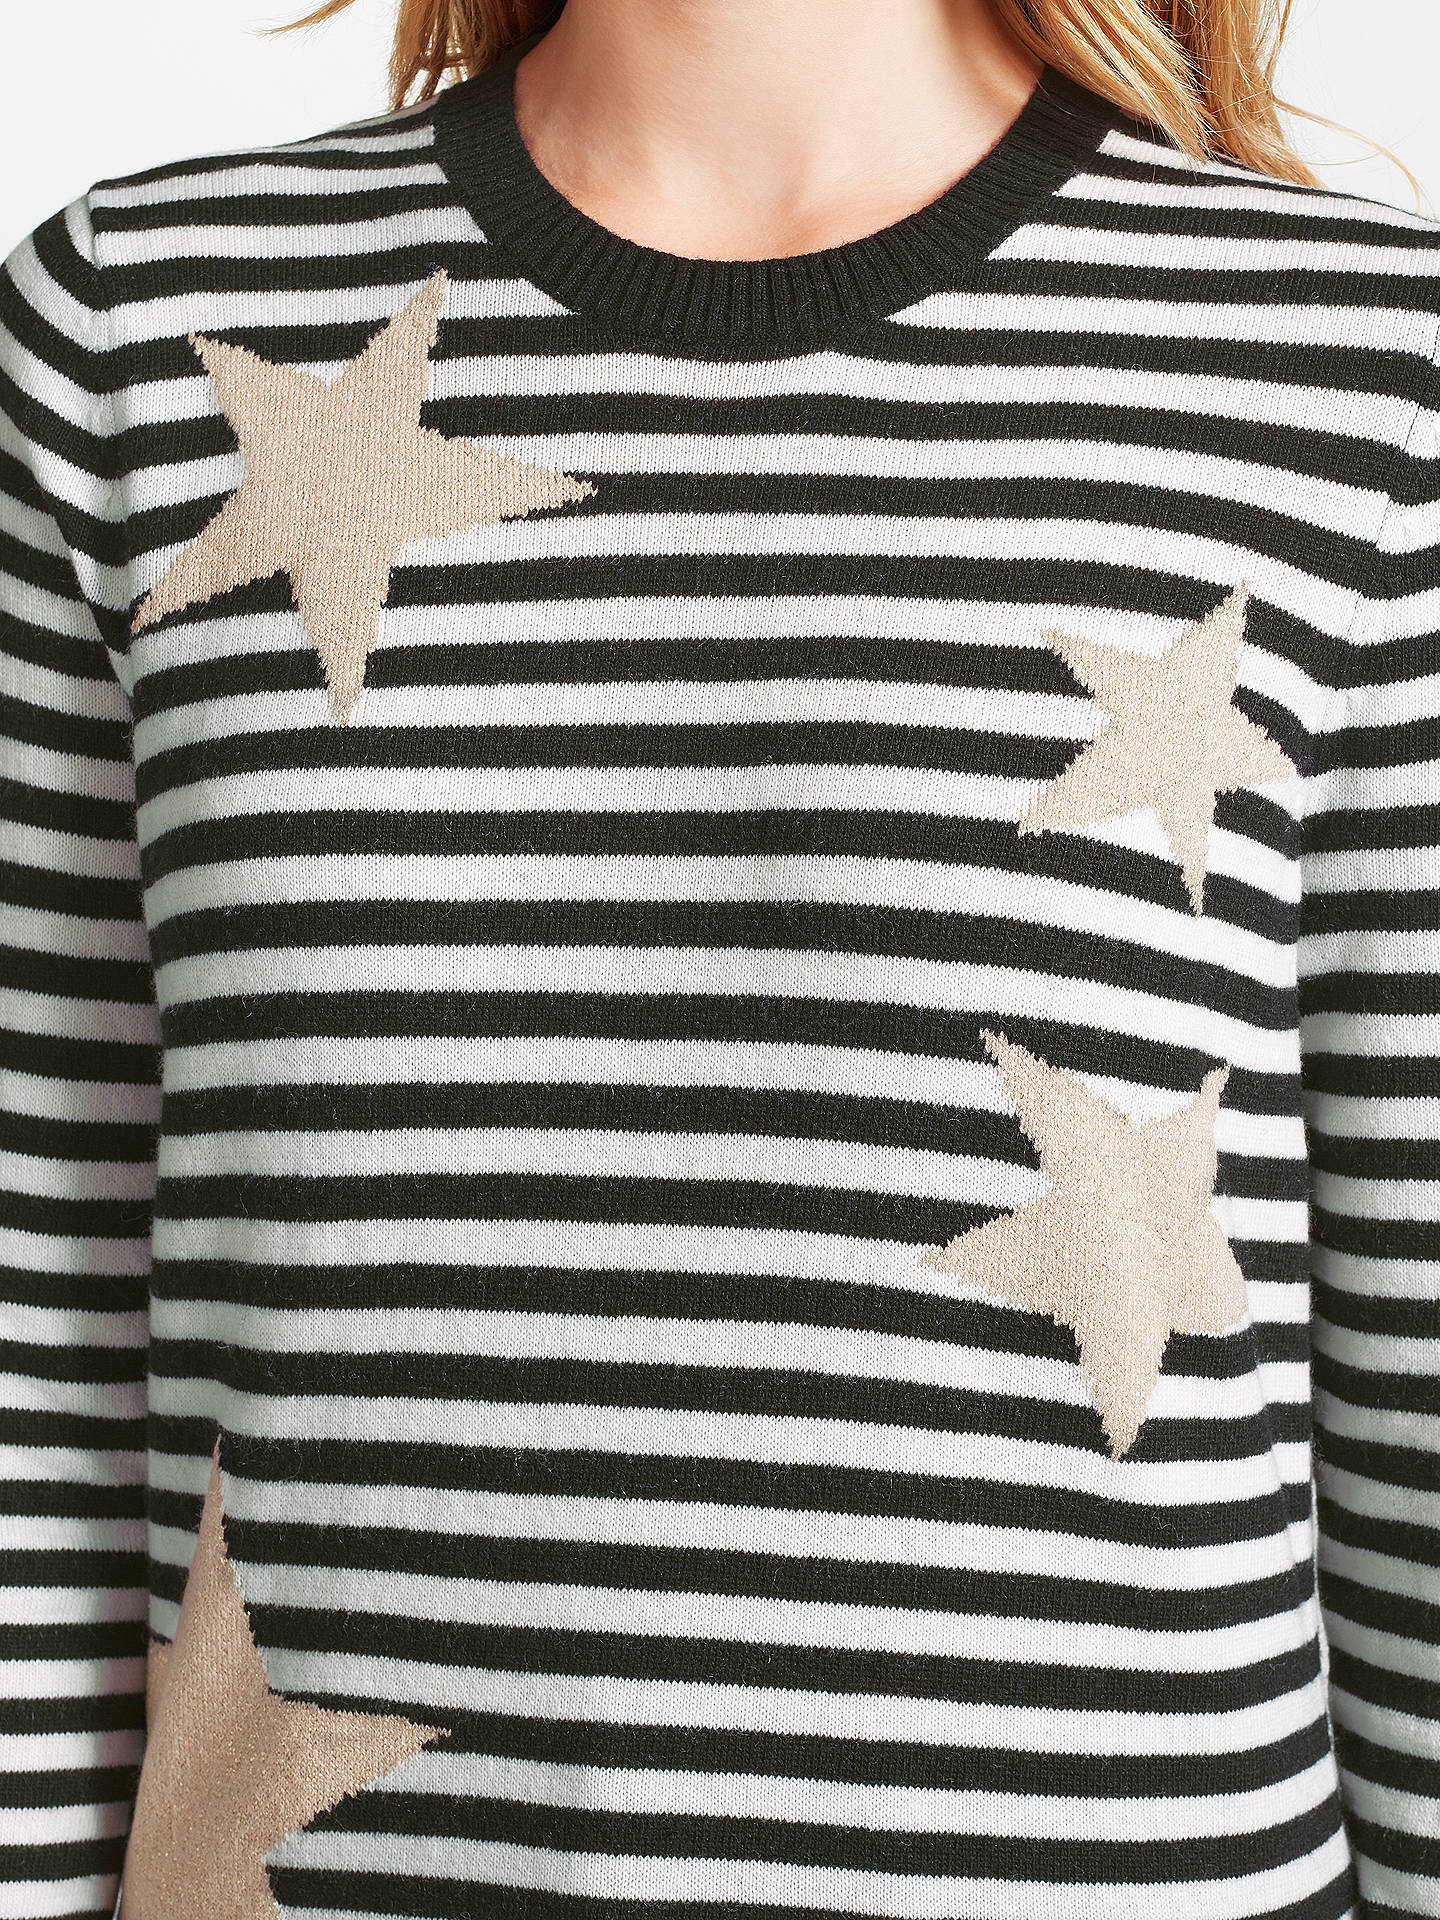 BuyCollection WEEKEND by John Lewis Stripe & Star Intarsia Jumper, Black/Cream, 8 Online at johnlewis.com